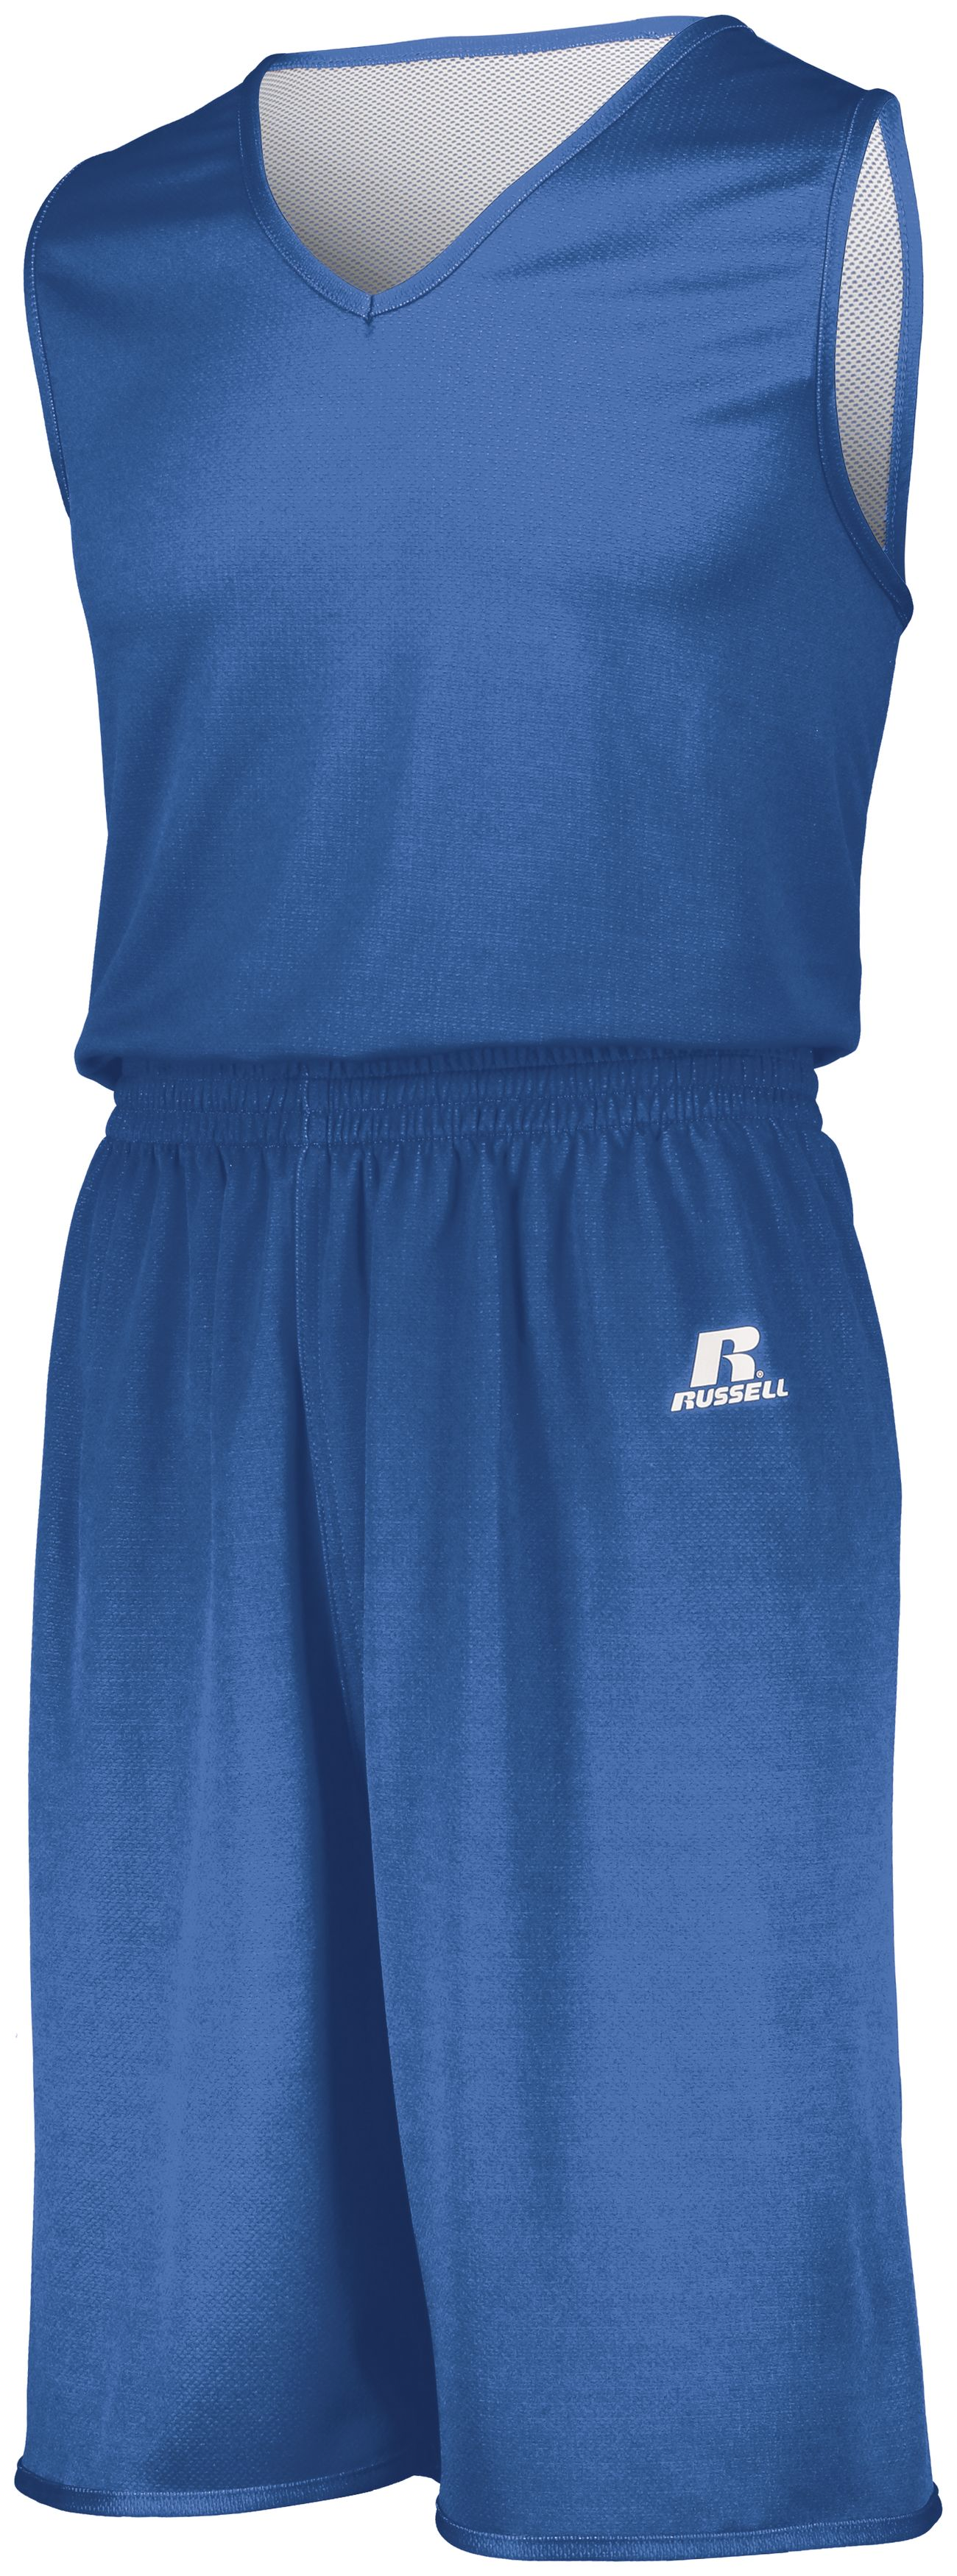 Youth Undivided Solid Single Ply Reversible Shorts - COLUMBIA BLUE/WHITE